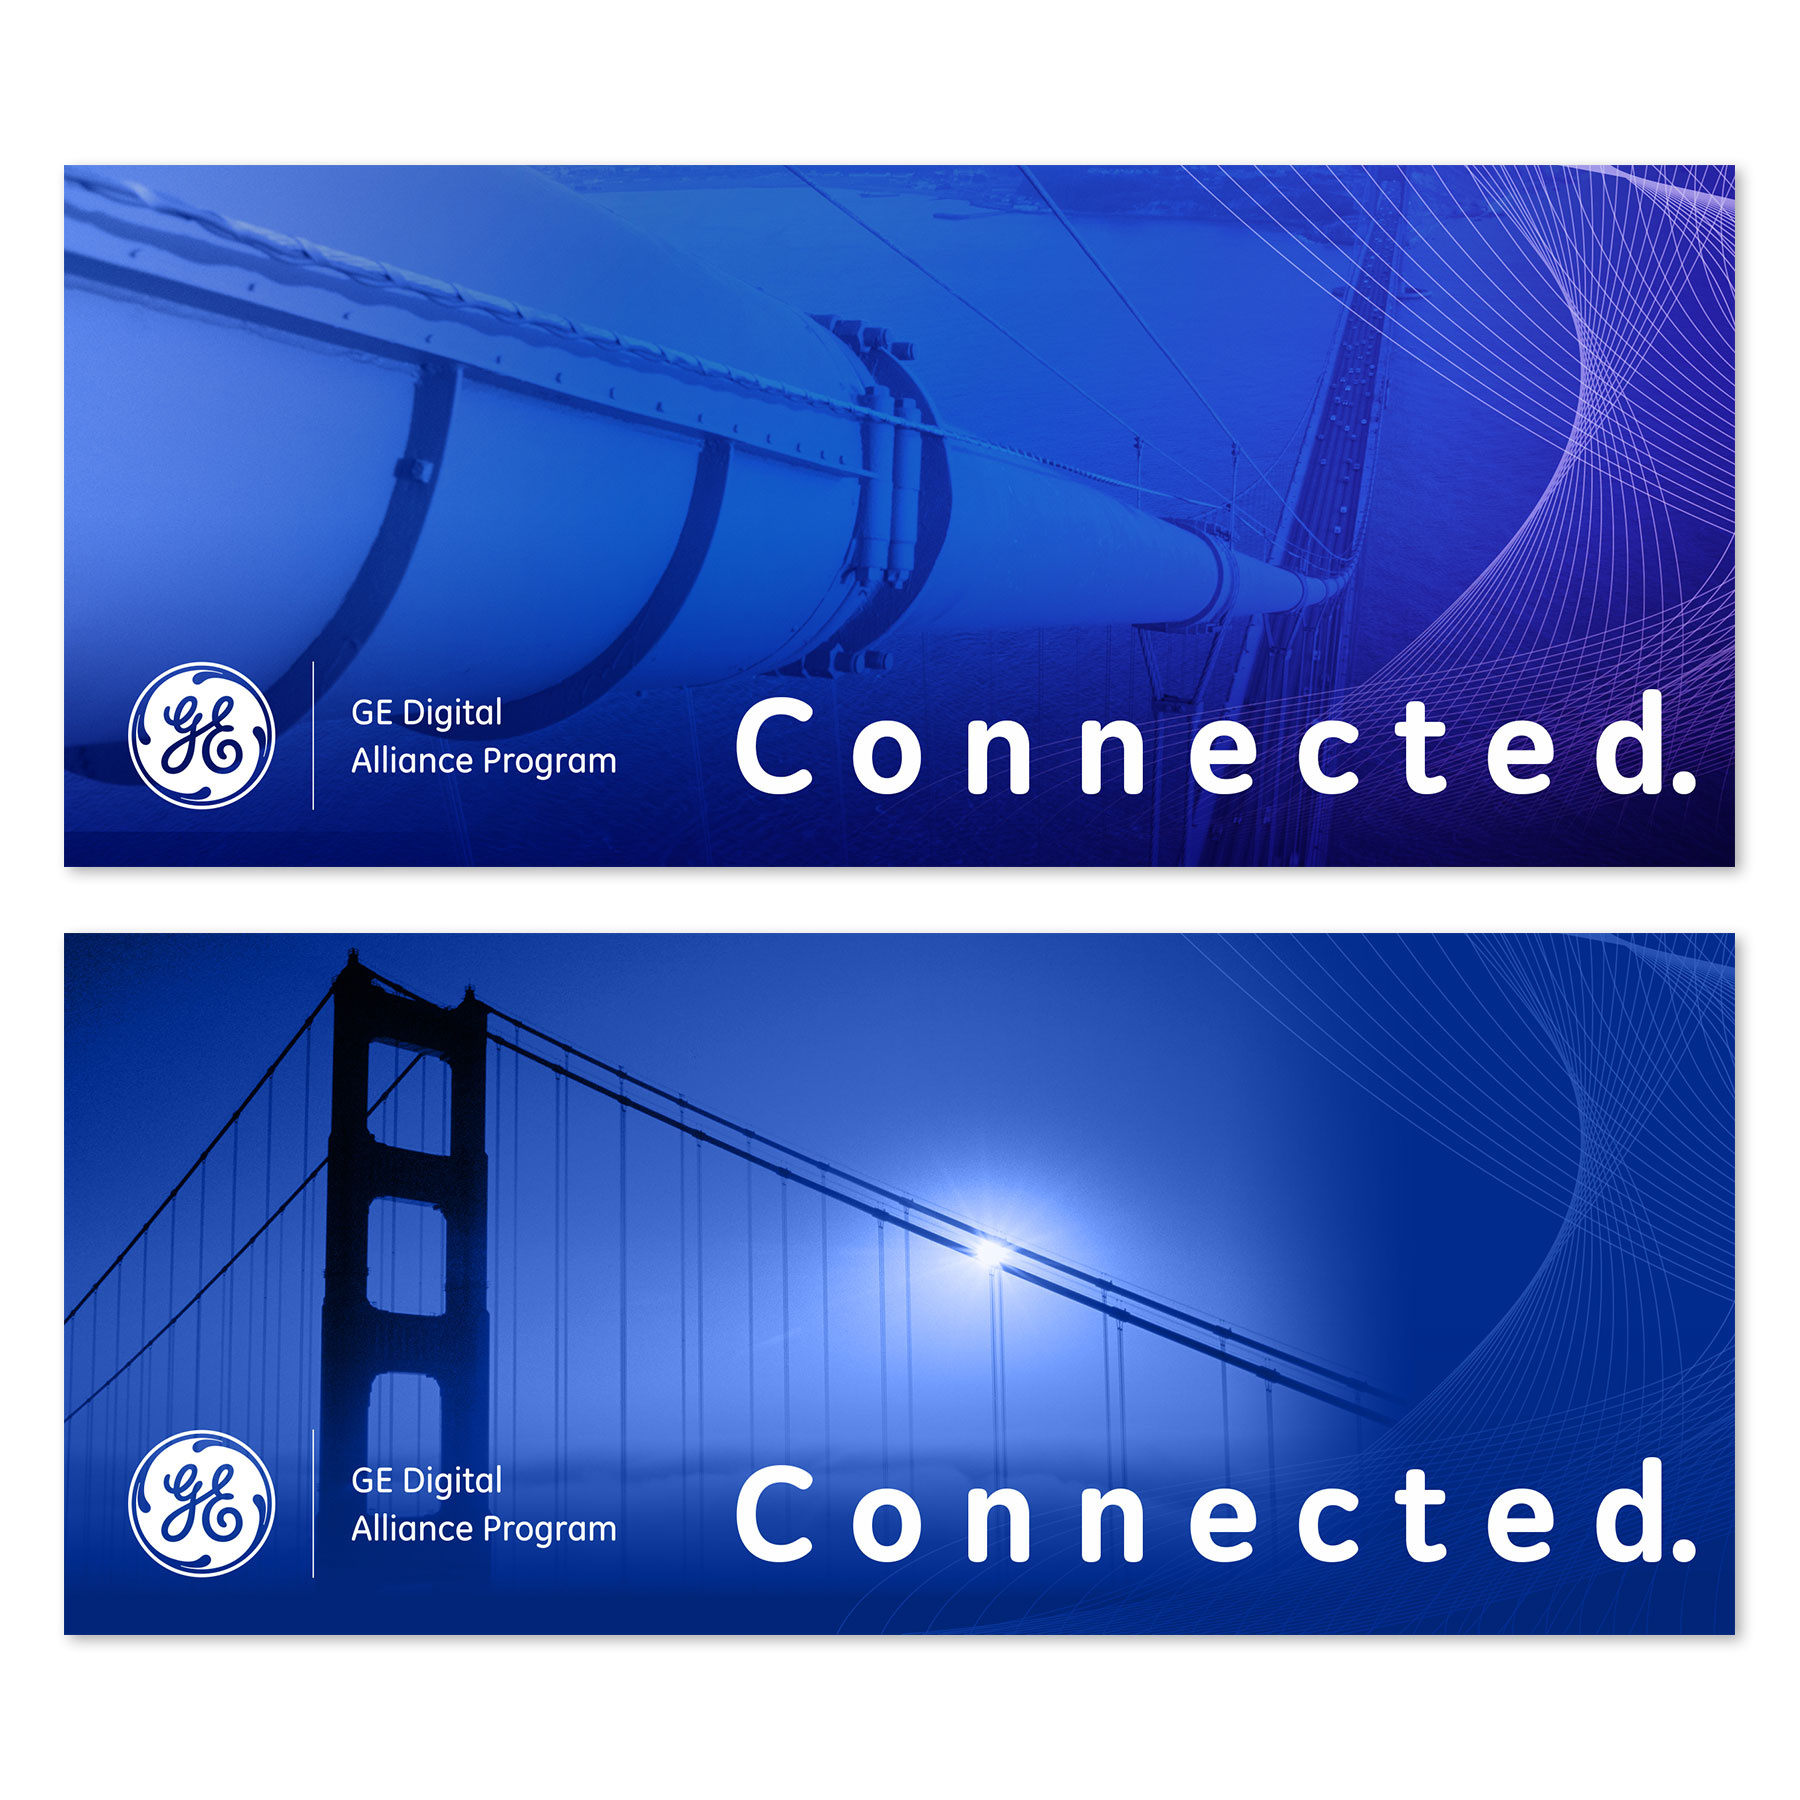 General Electric Connected Banners